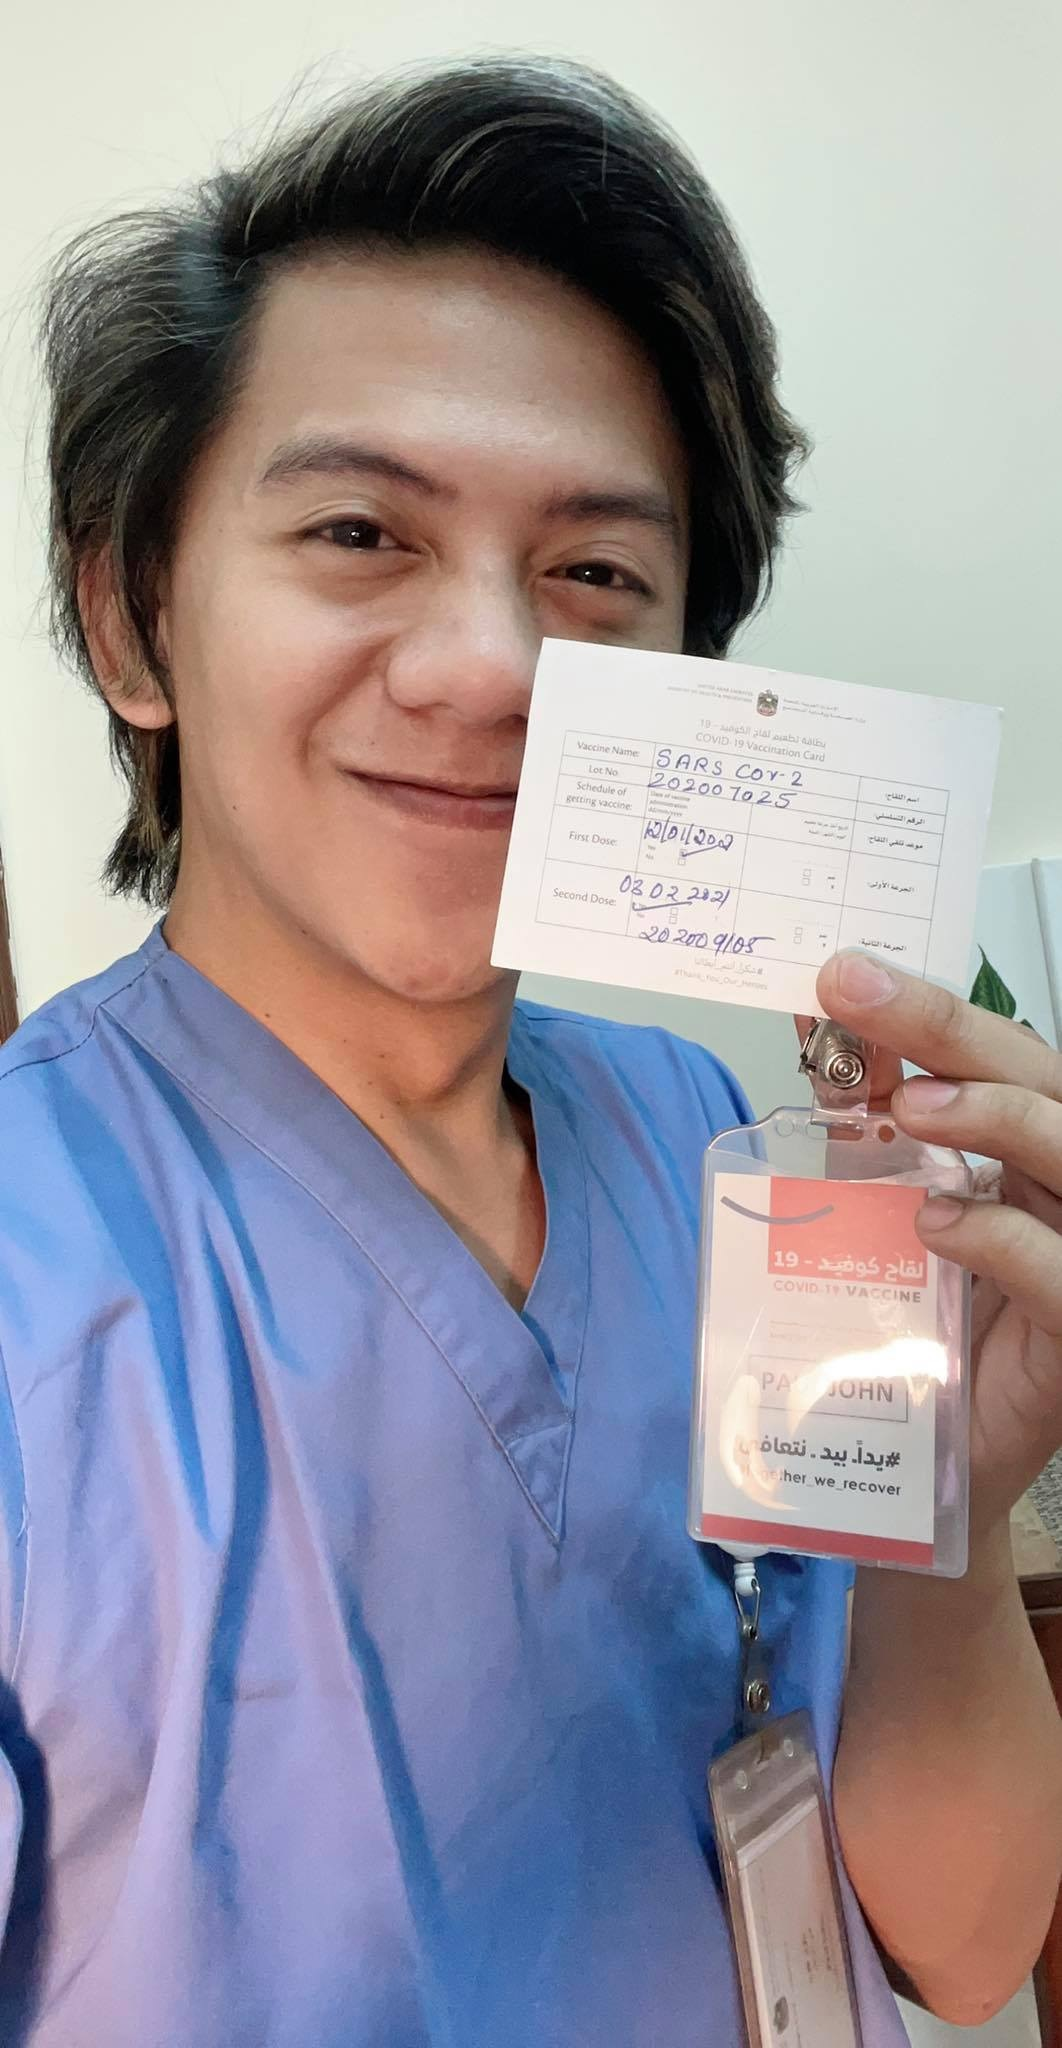 """""""Mas confident ako ngayong humarap sa aking mga pasyente bilang frontliner at ramdam kong pas protektado ako kapag haharap sa mga COVID-19 patients. I decided to take the vaccine to have enough protection and to protect also the people around me. MABROOK IMARATIYAH! To all the leaders of our beloved UAE, thank you so much for your unending support for all!,"""" Paul John Reyes, 4 years in UAE, 75 days since second dose"""